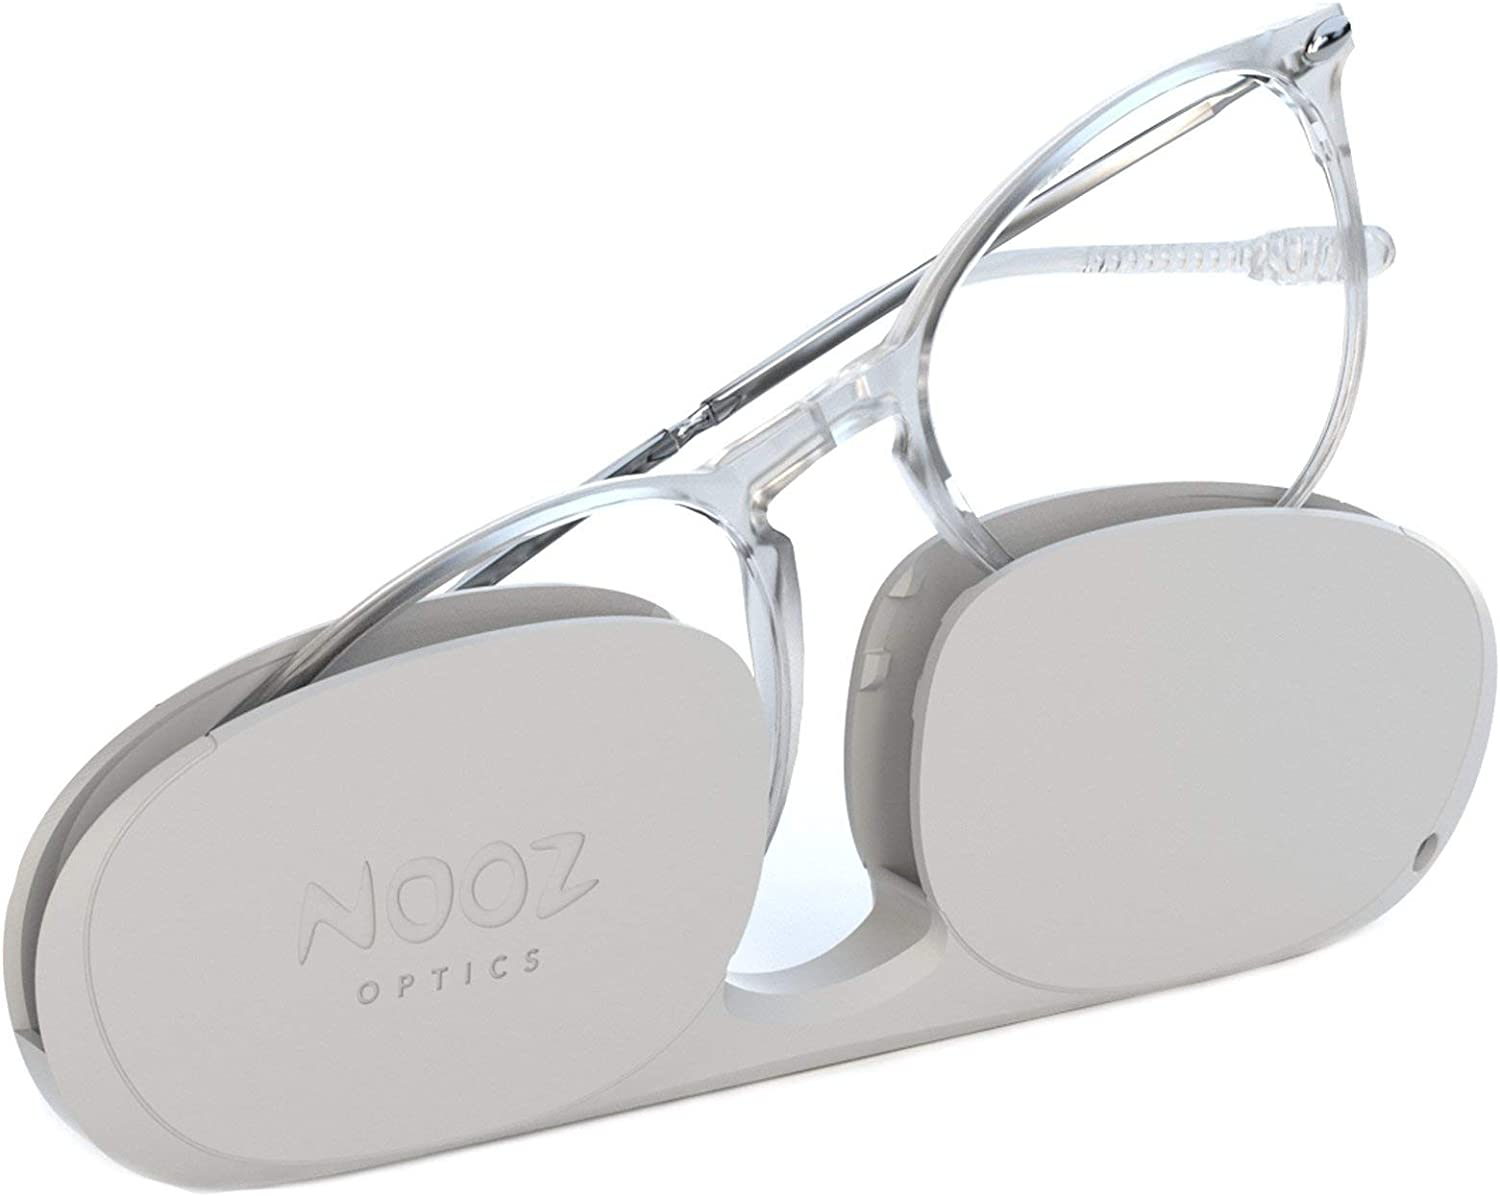 Nooz Optics Reading Trust Glasses - Readers Oval Magnifying fo Shape Free shipping / New